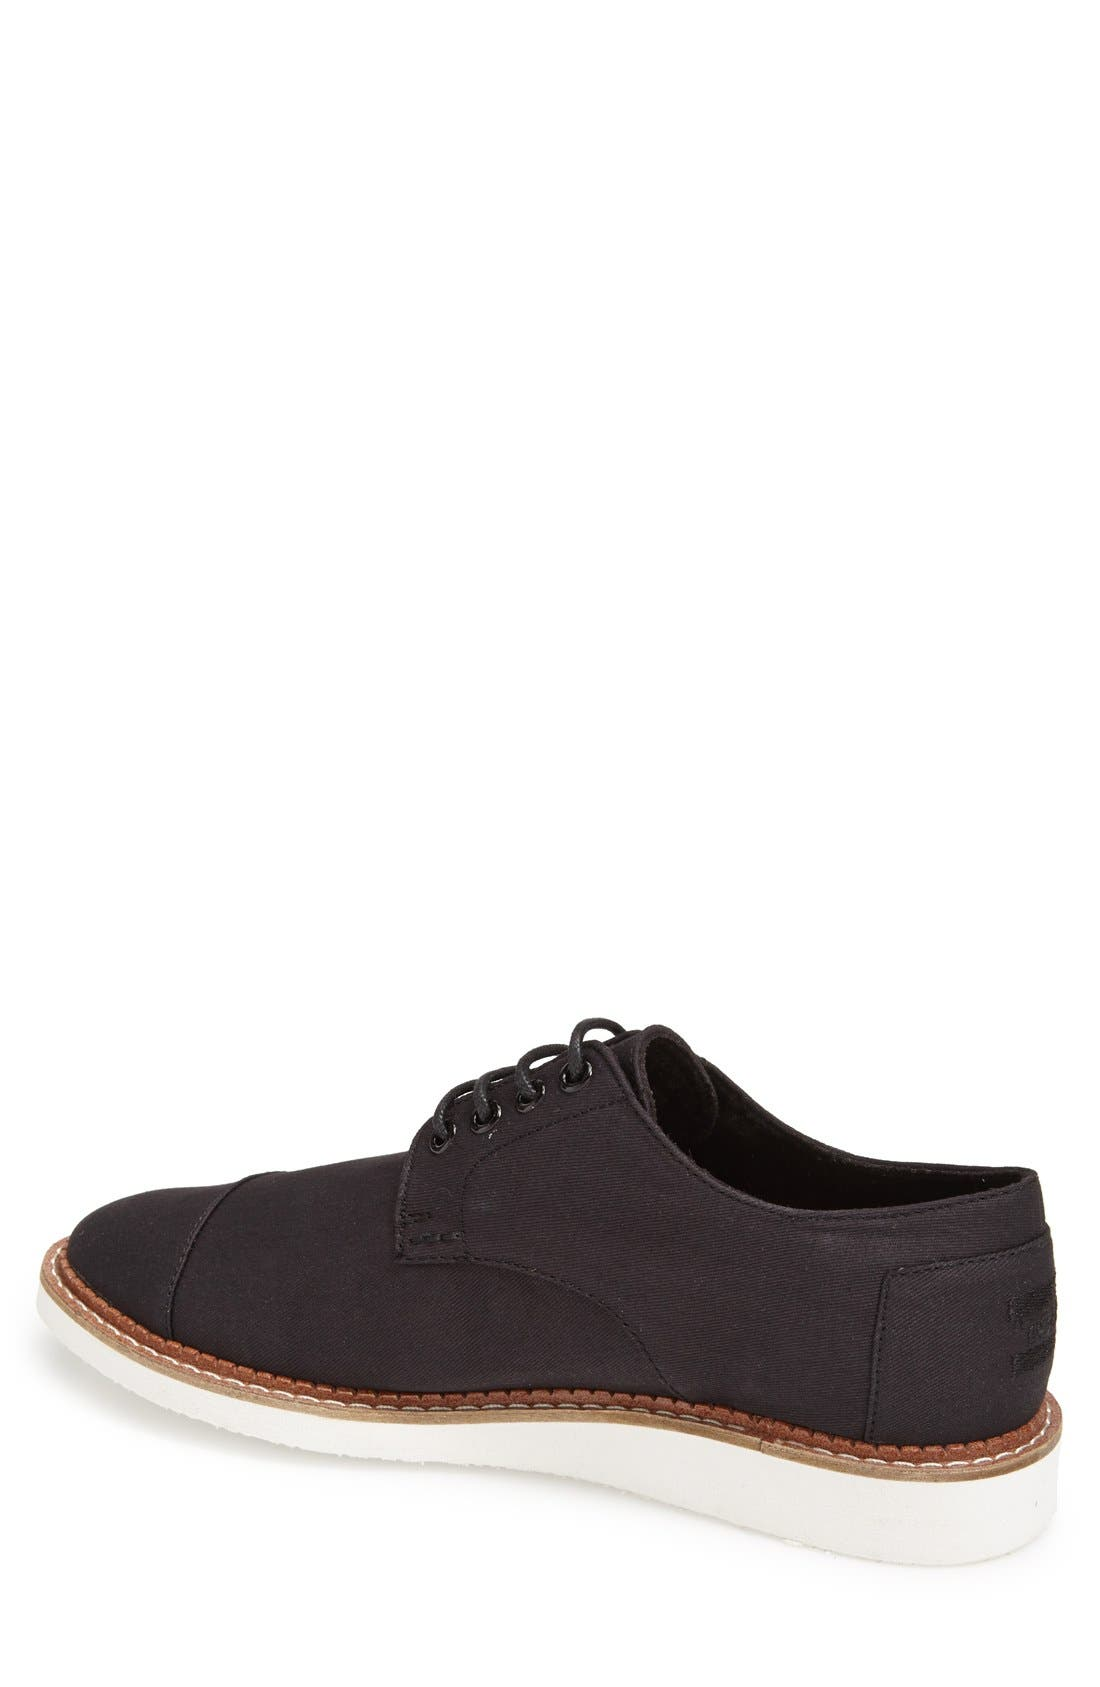 'Classic Brogue' Cotton Twill Derby,                             Alternate thumbnail 2, color,                             001